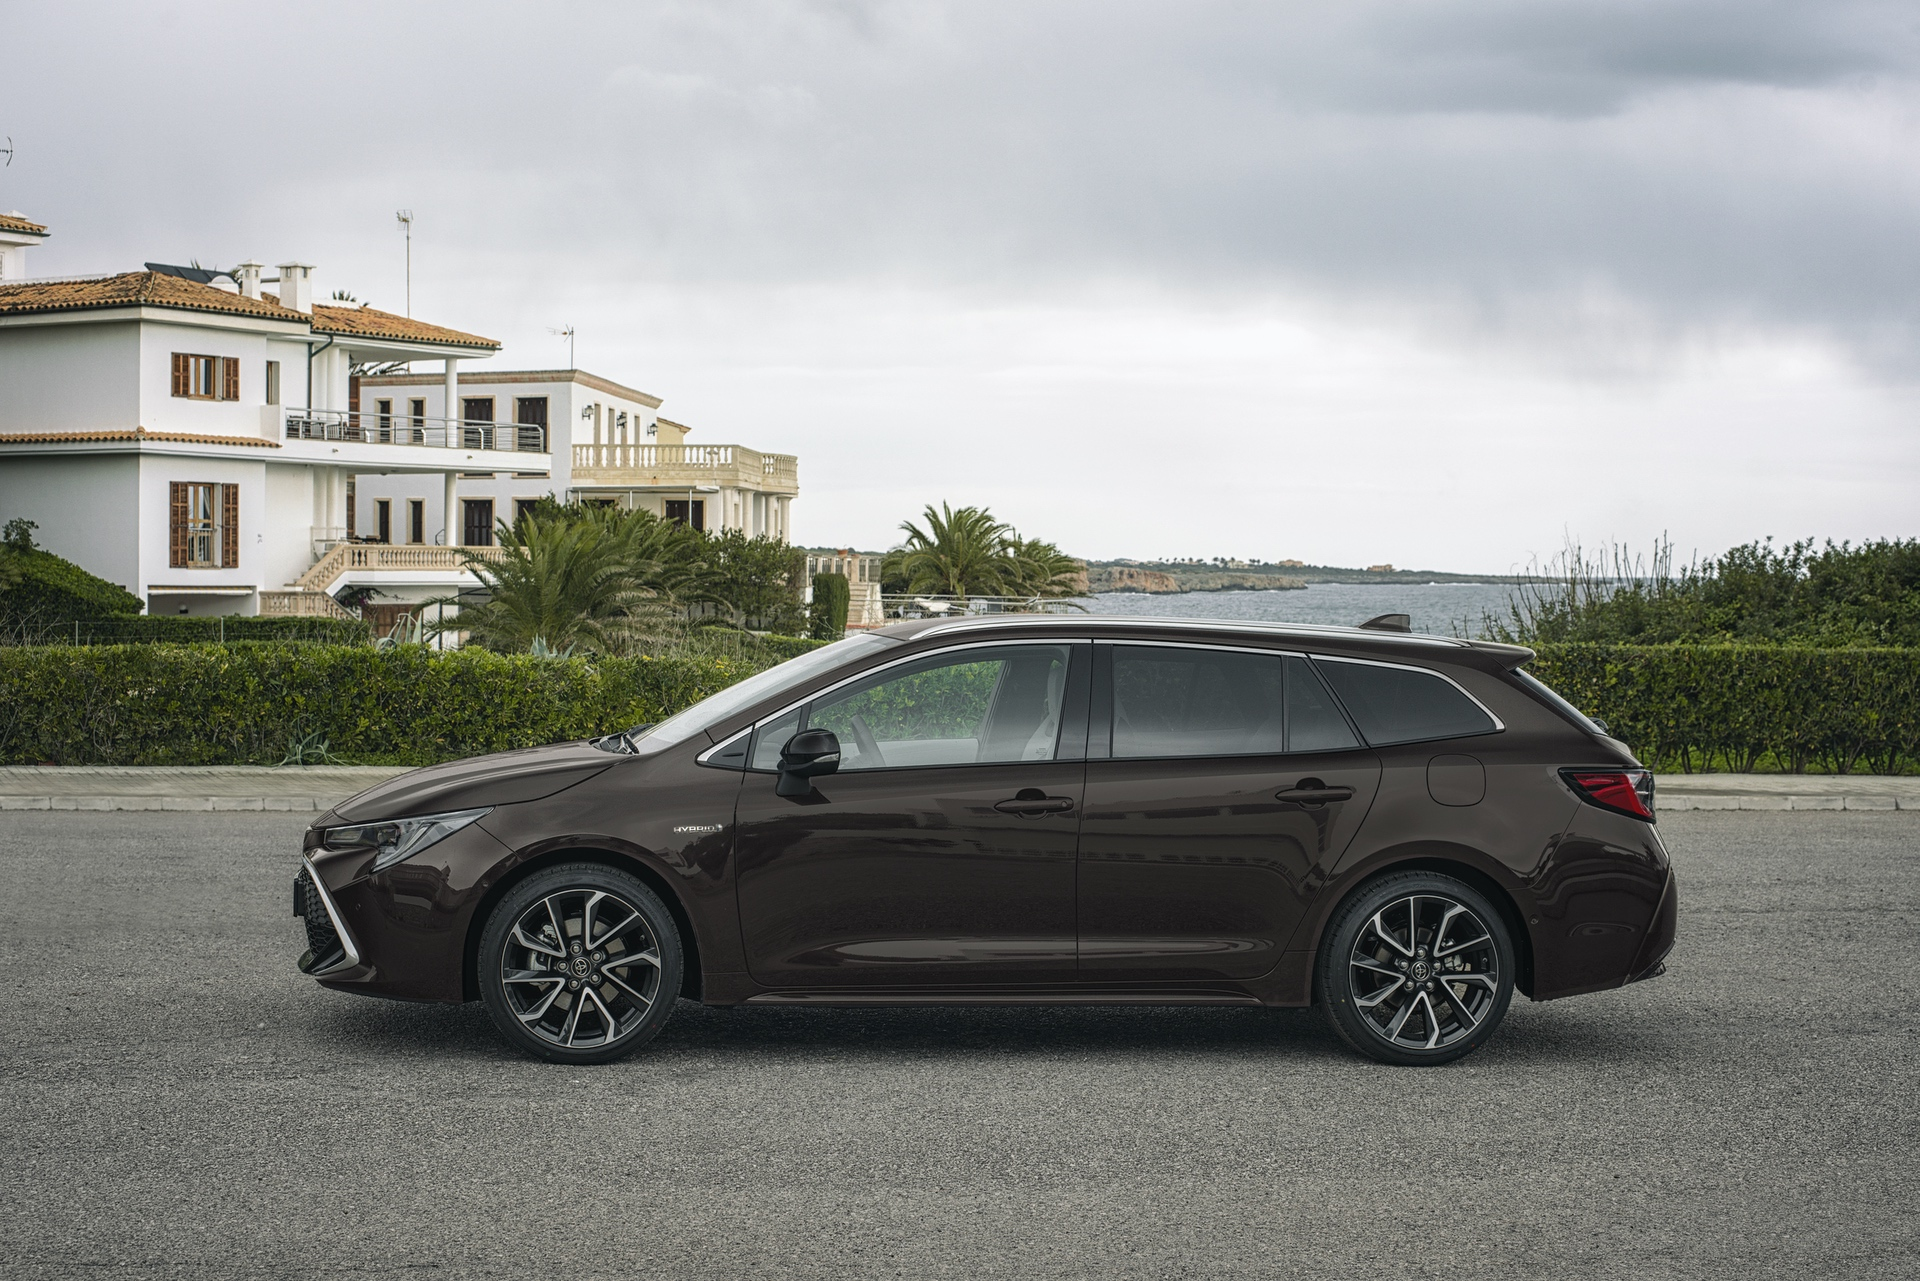 Corolla_TS_2.0L_Brown_2019_003